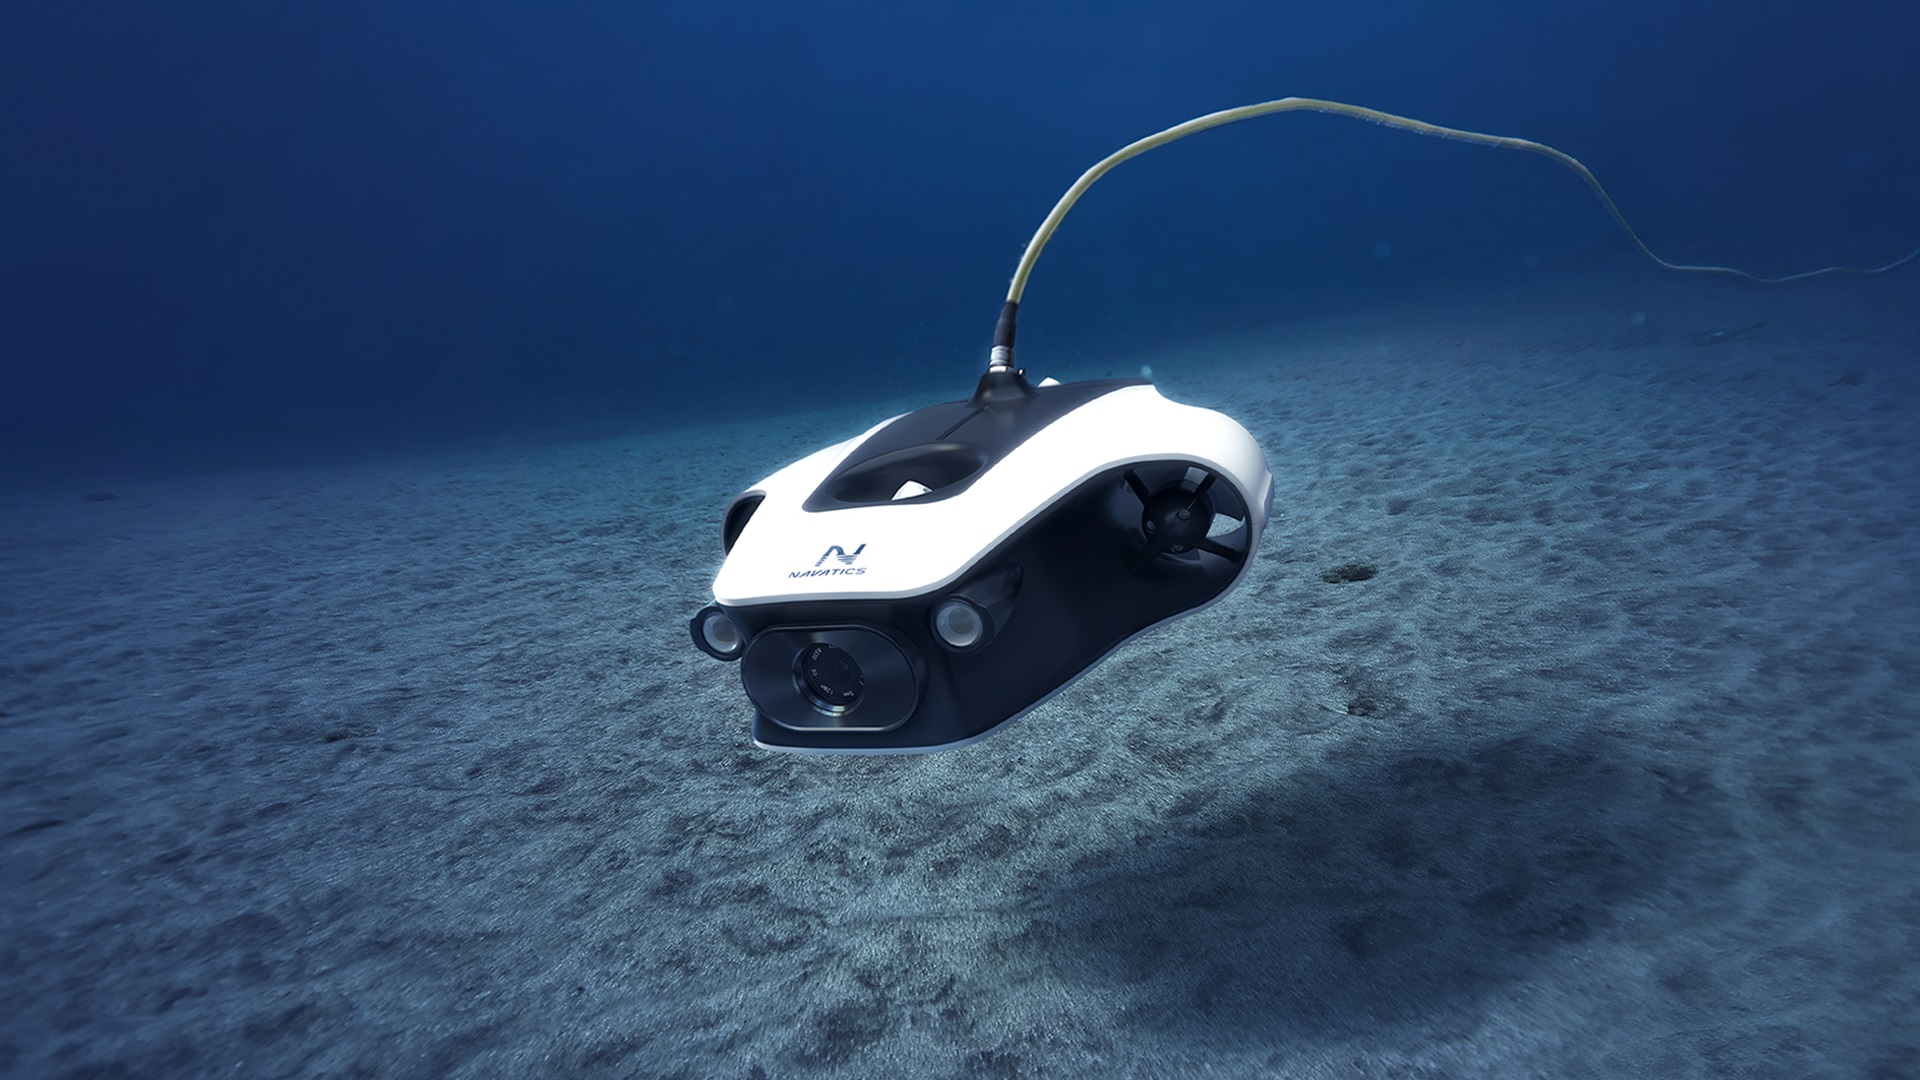 Drone submarino Navatics MITO